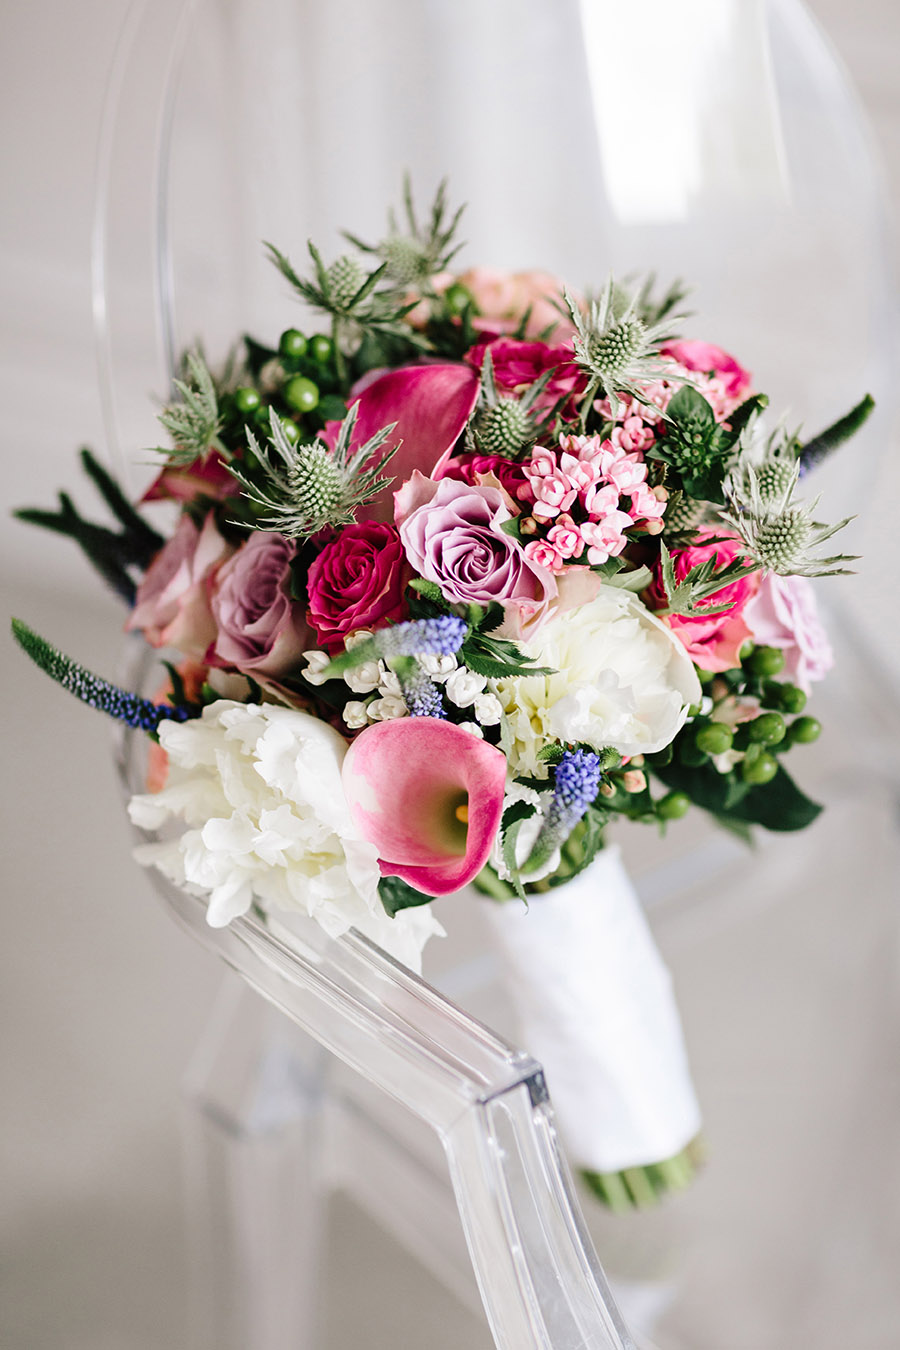 Incredible florals for Maryanne & Adam's beautiful Chippenham Park Hall wedding, with images by Nick + Maria (8)